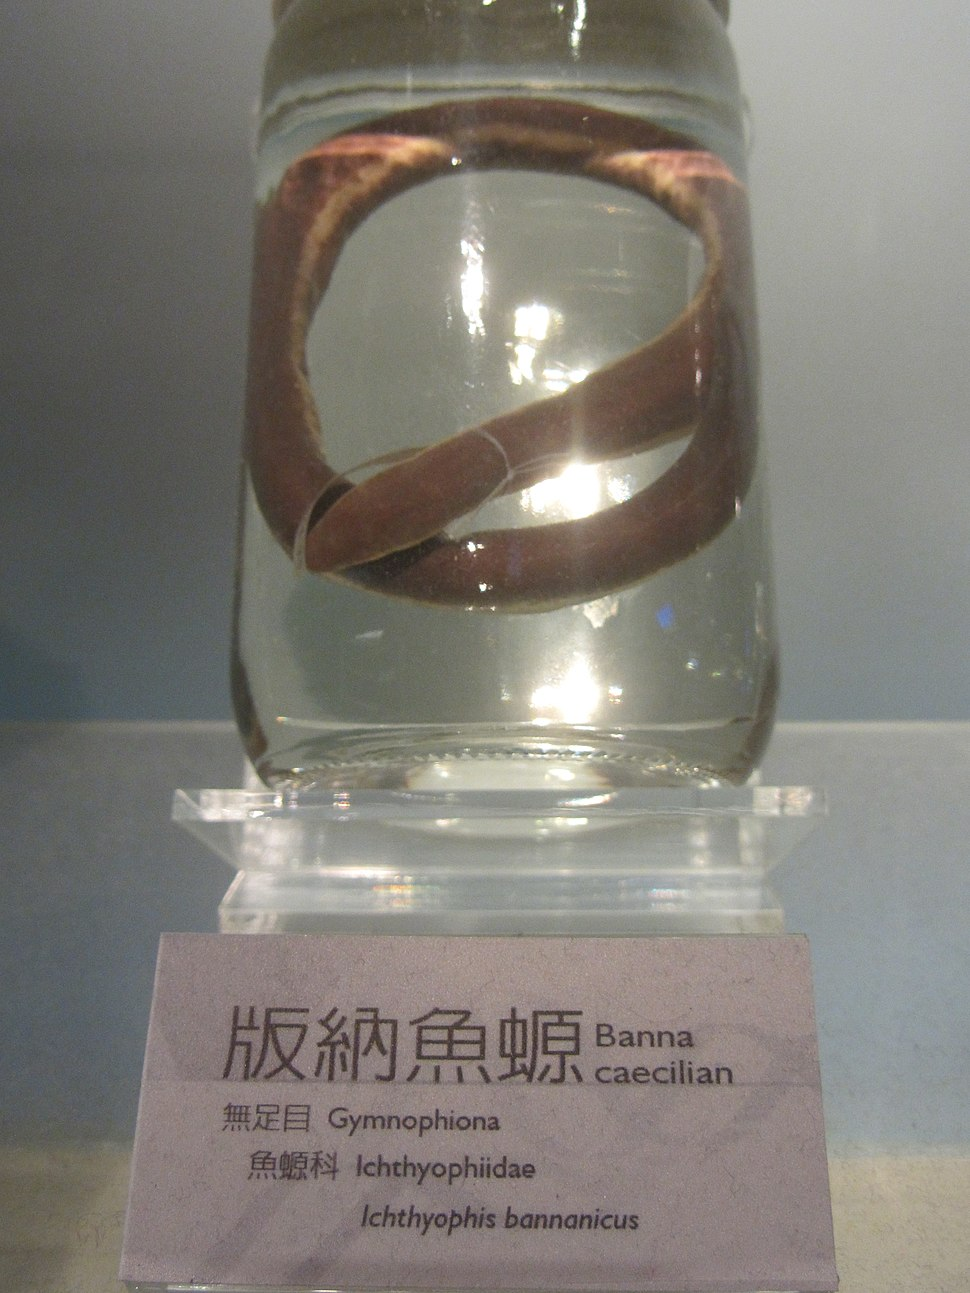 Specimen of Ichthyophis bannanicus in National Museum of Natural Science in Taiwan